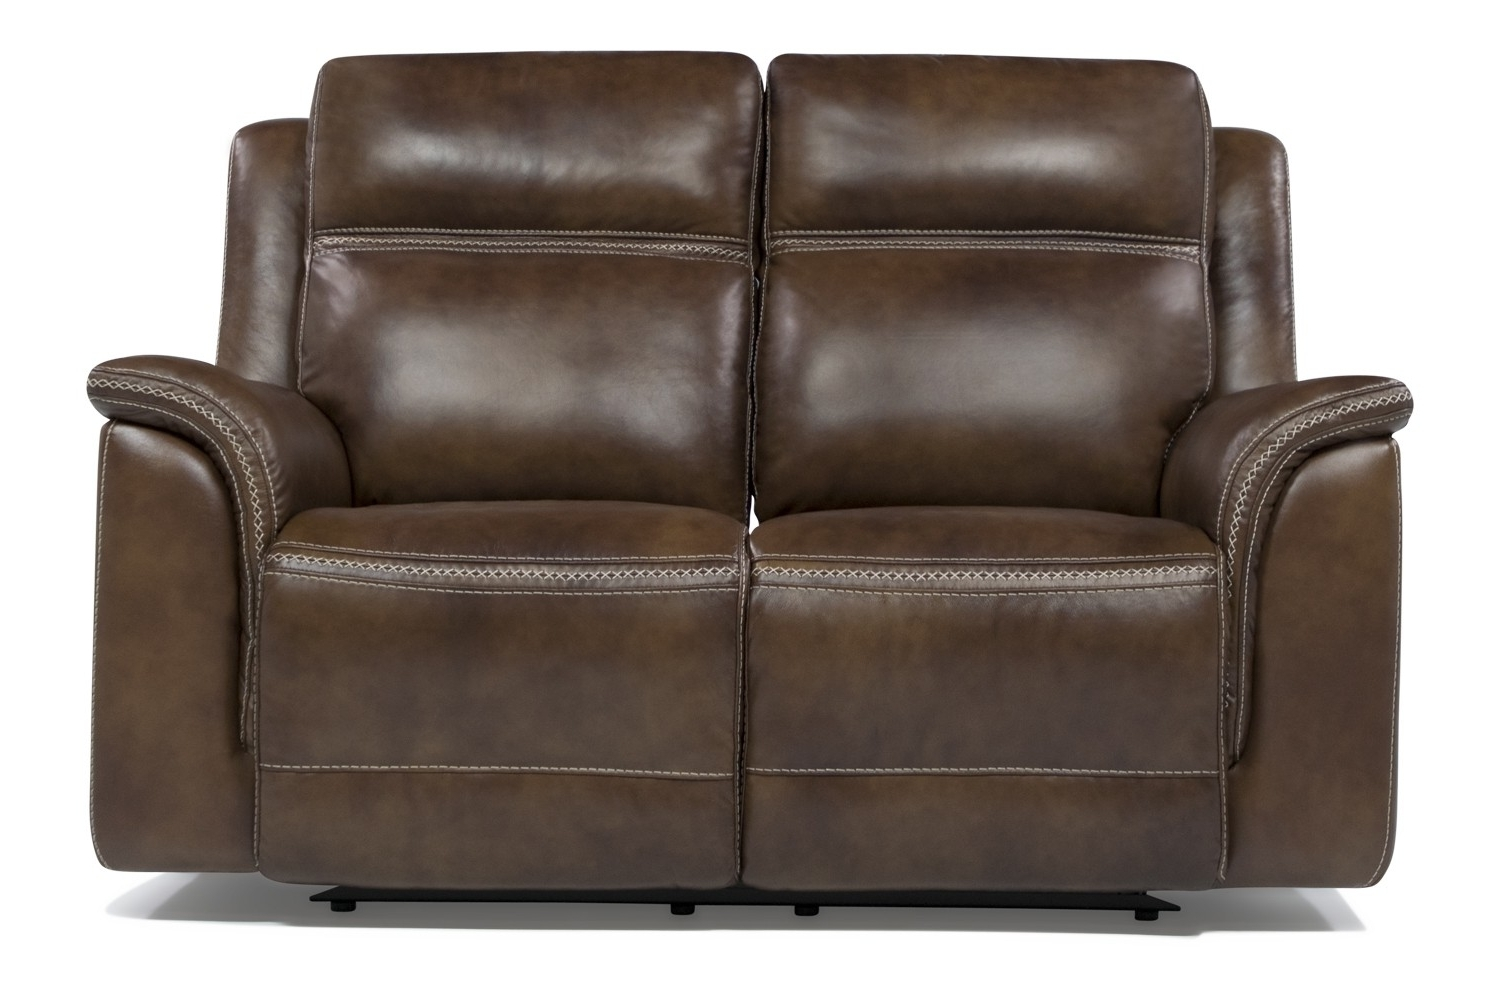 Everett Wa Sectional Sofas With Regard To Well Known Living Room Furniture (View 7 of 15)